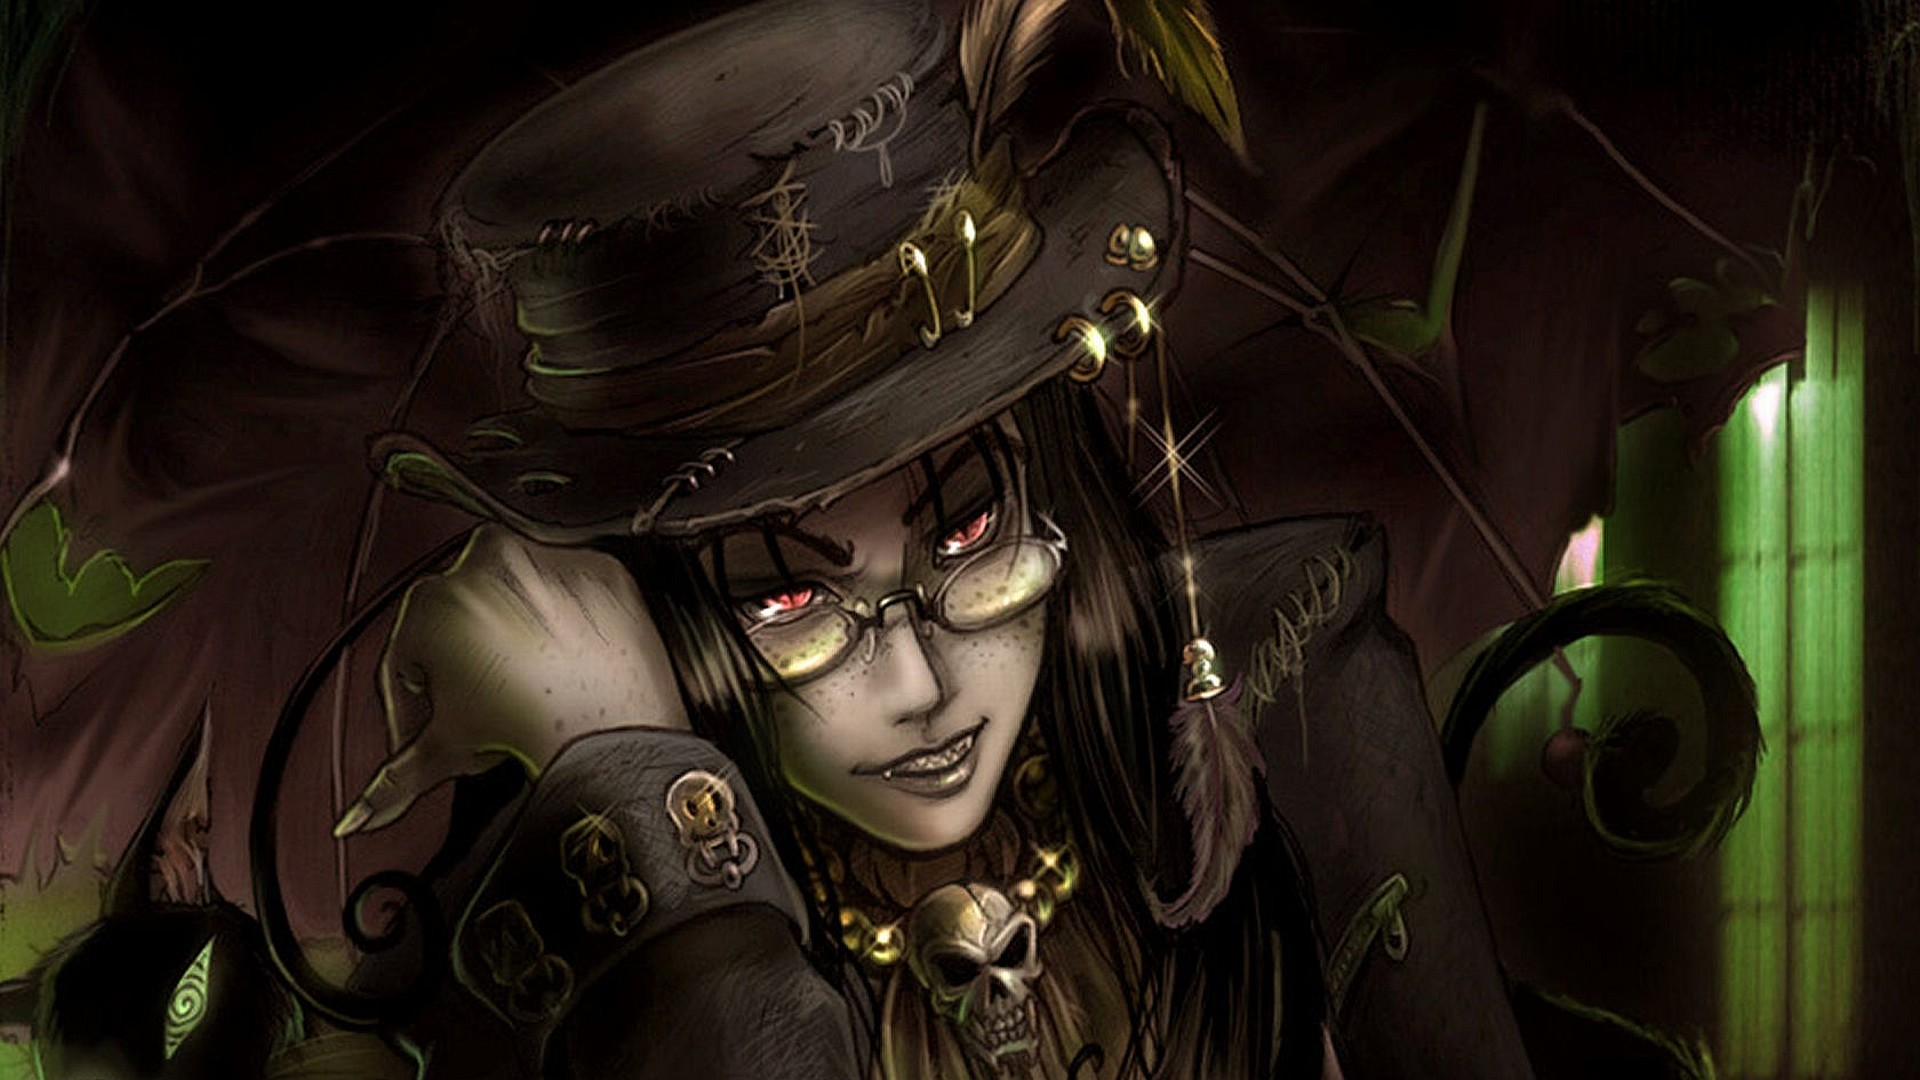 Res: 1920x1080, Gothic Anime HD Image. Click on the image to view full size and download.